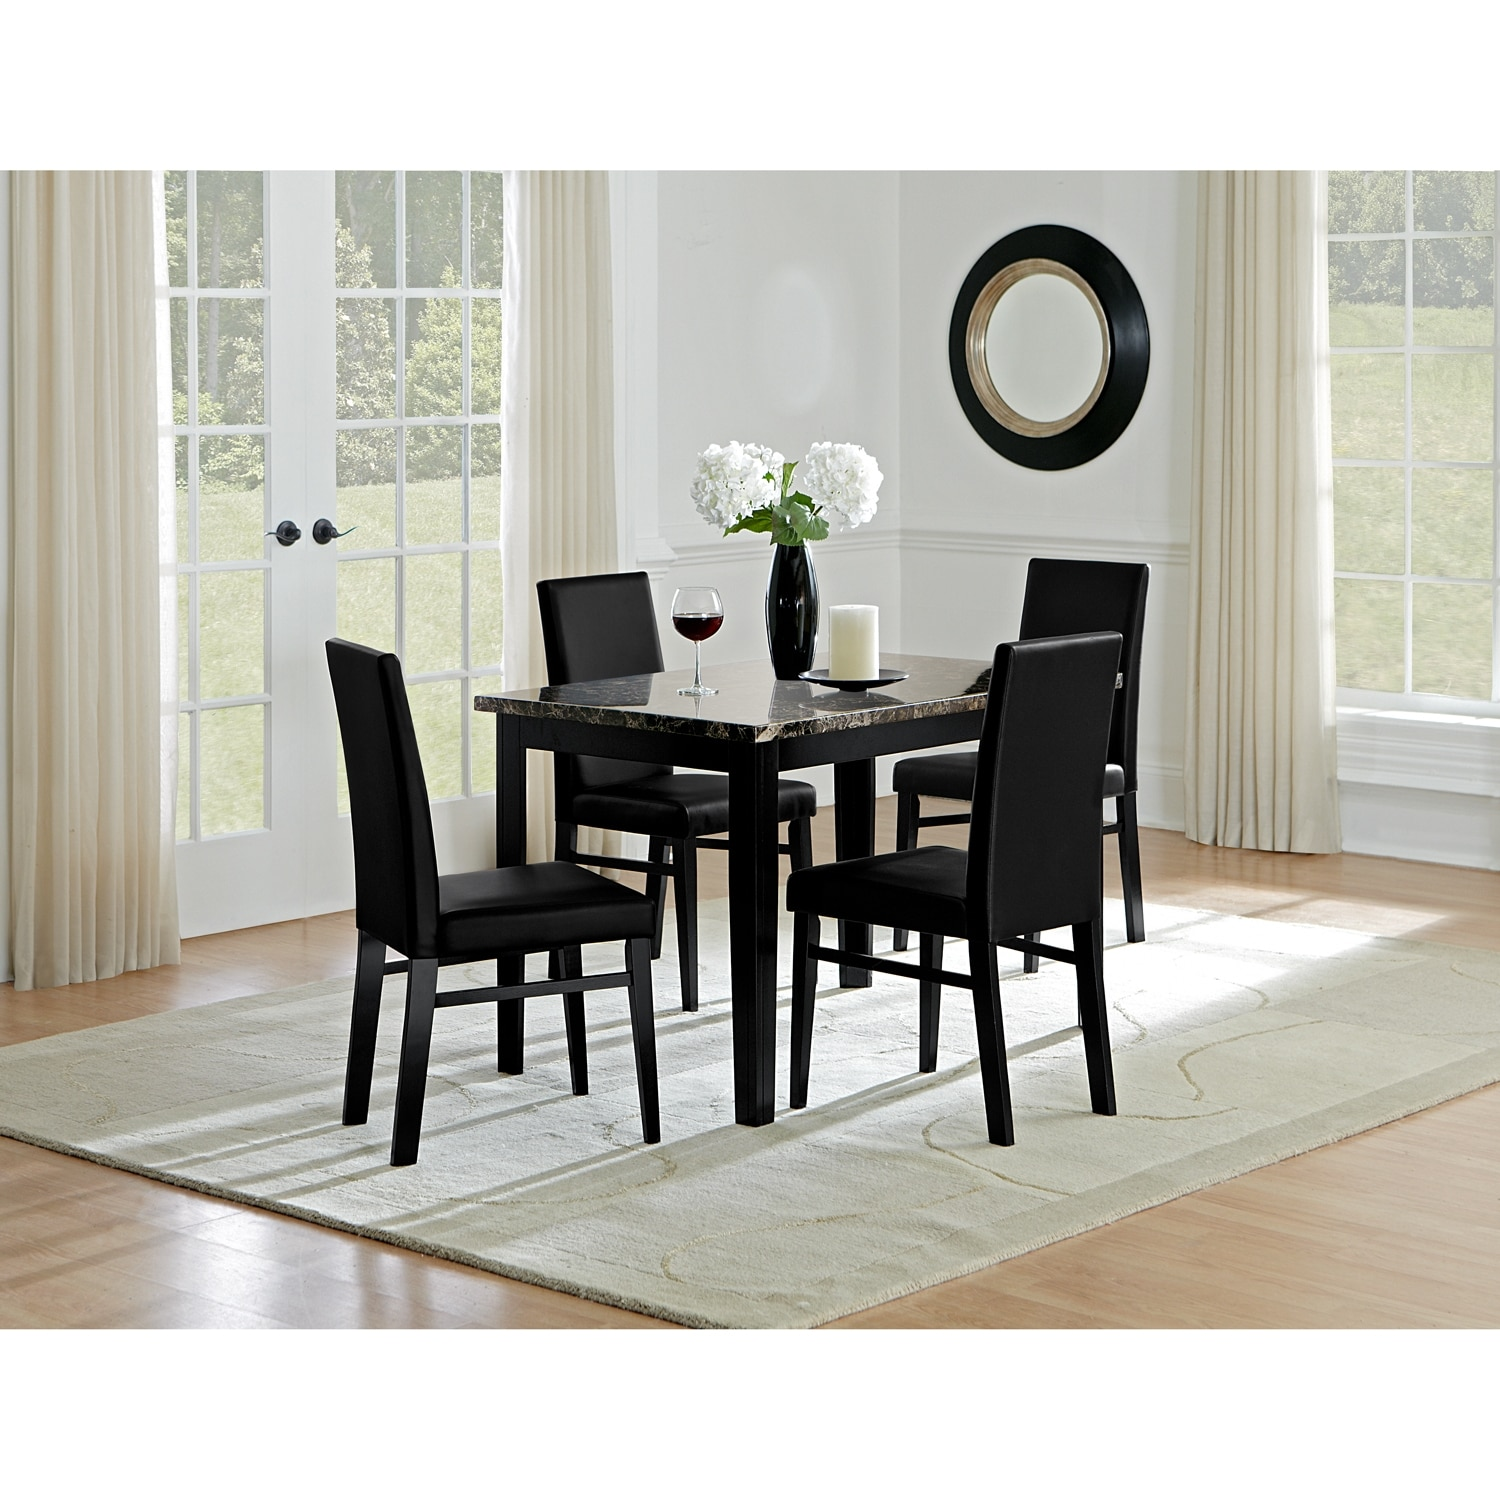 click to change image - Dining Room Sets Value City Furniture